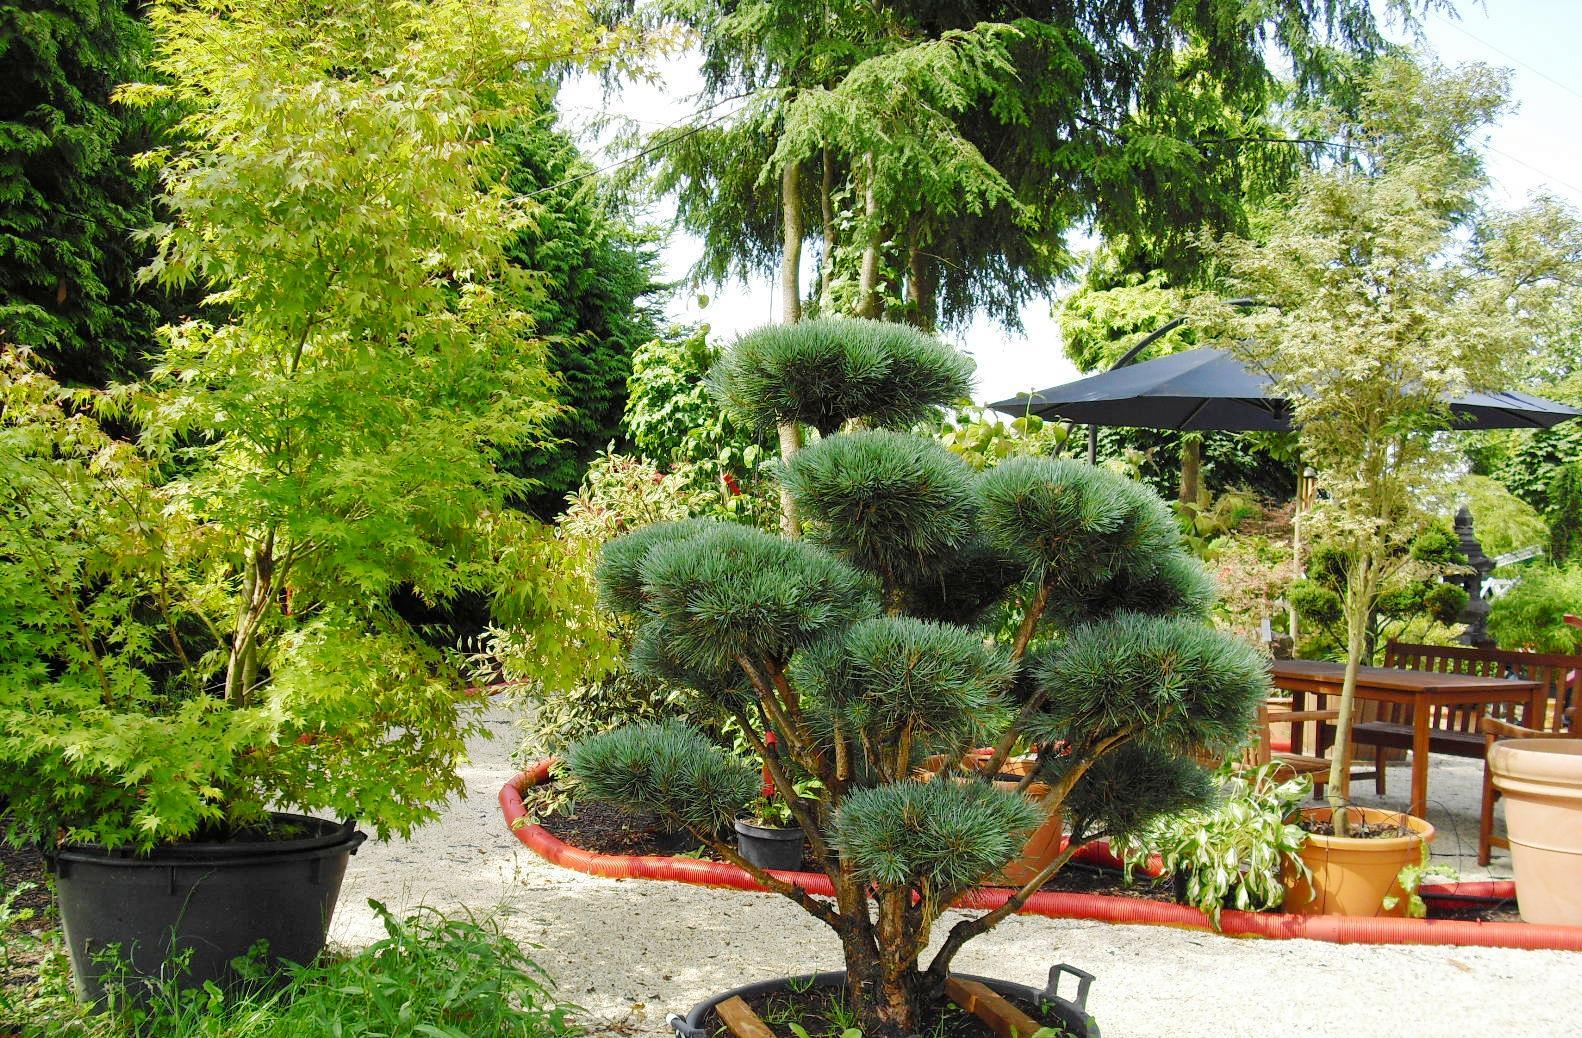 gartenbonsai vom fachbetrieb bonsai in xxl. Black Bedroom Furniture Sets. Home Design Ideas